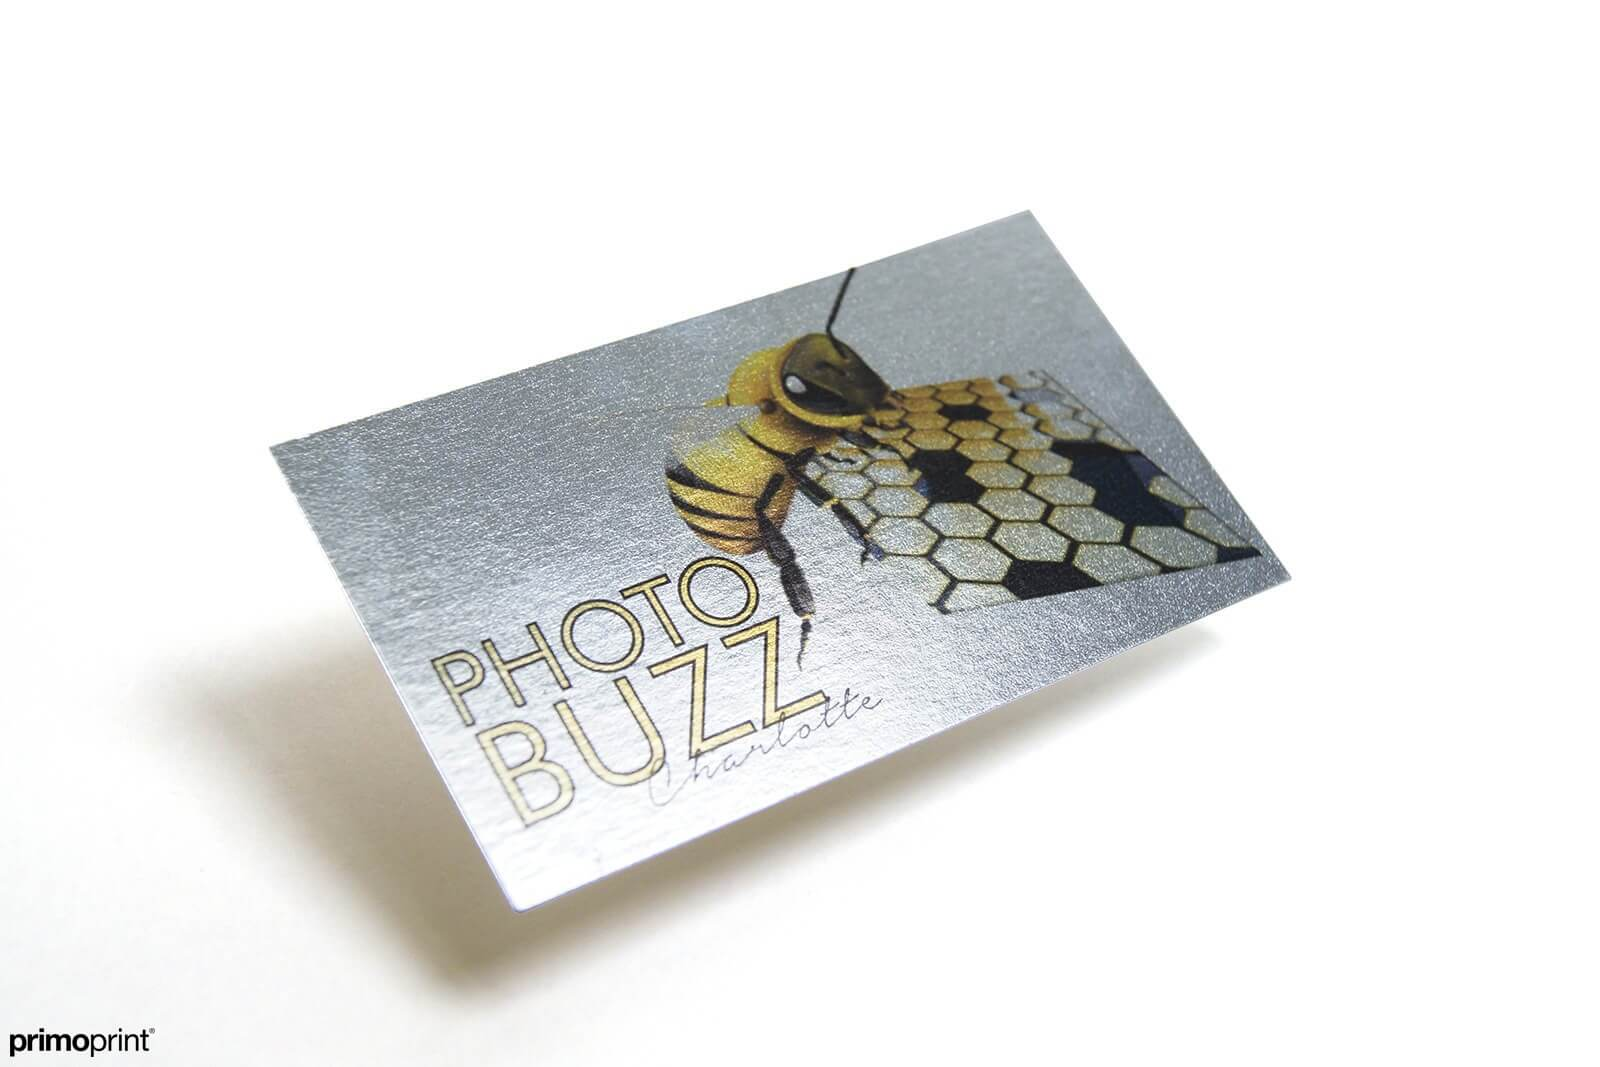 Inline foil business card. With Inline Foil, you can turn a wide range of CMYK colors into multi-colored foils. Business Card designed by Primoprint.